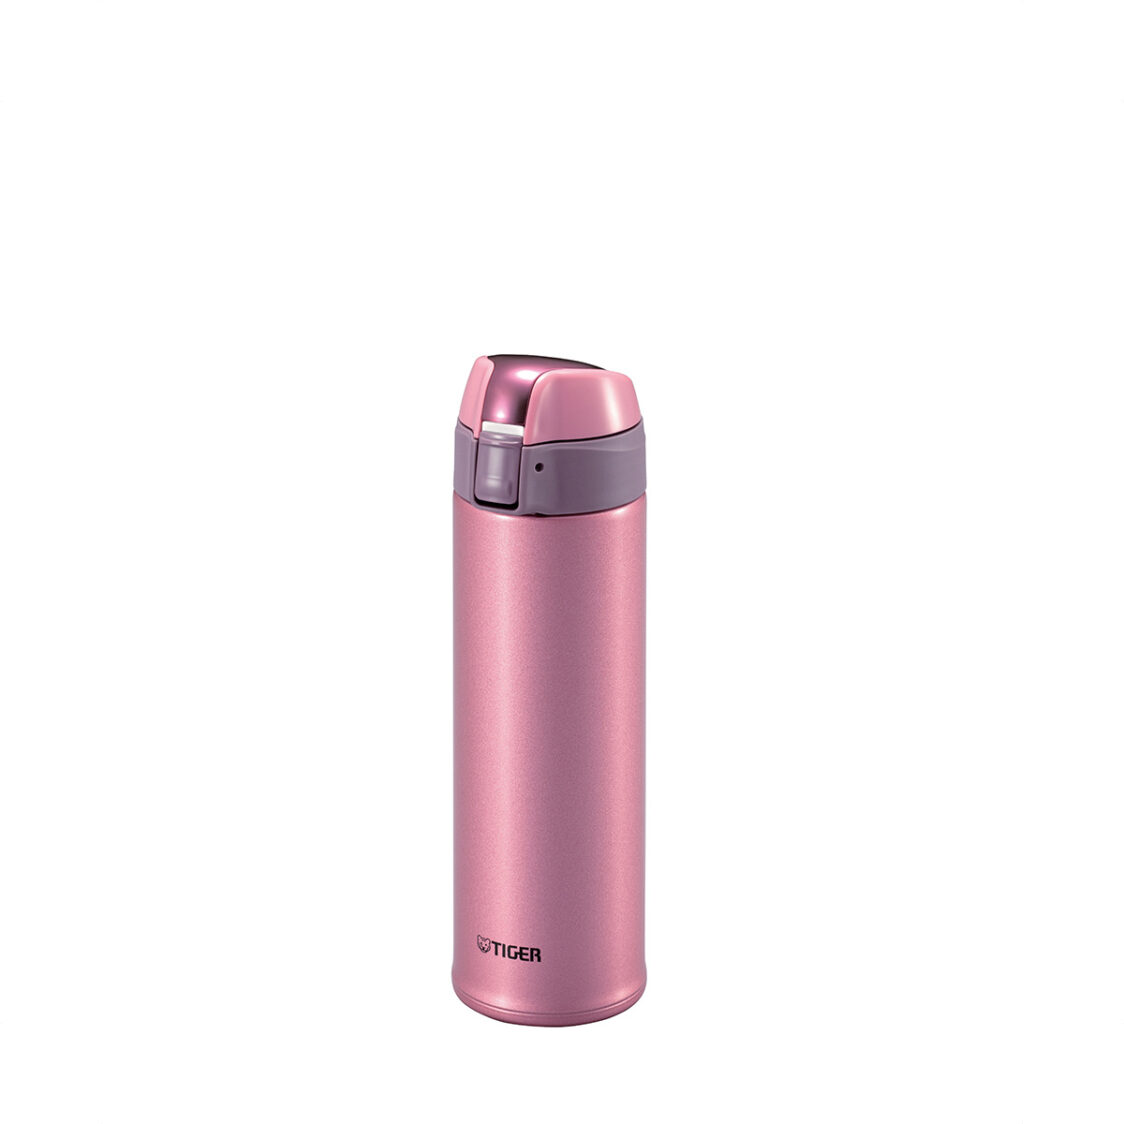 Tiger 500ml Double Stainless Steel Mug Bright Pink MMQ-S050PH